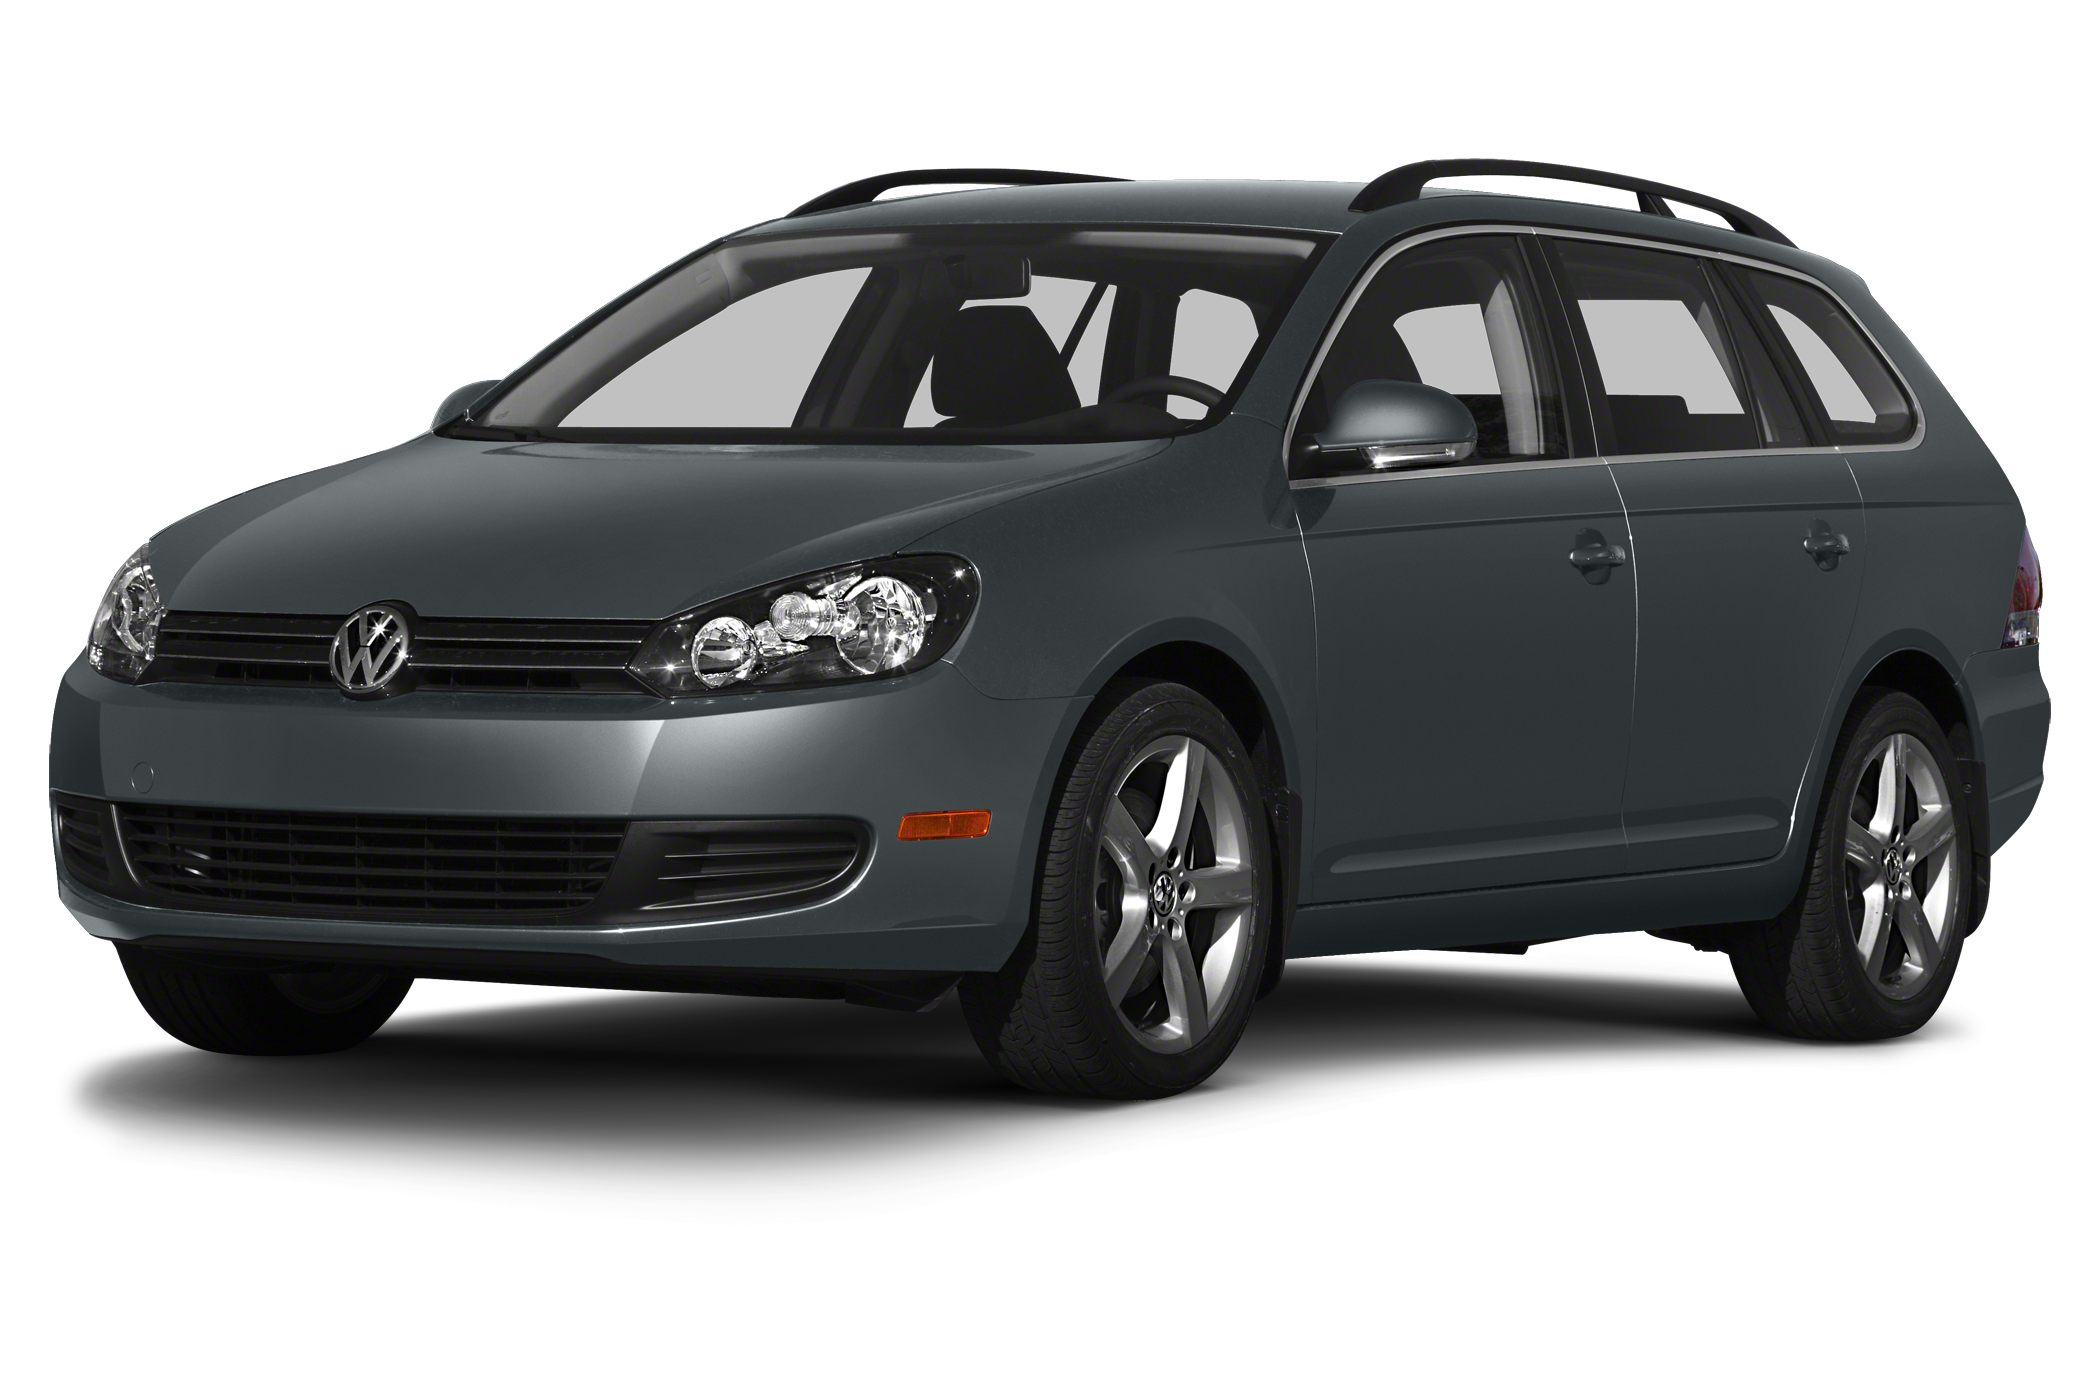 2013 Volkswagen Jetta SportWagen TDI Wagon for sale in Rome for $22,895 with 35,255 miles